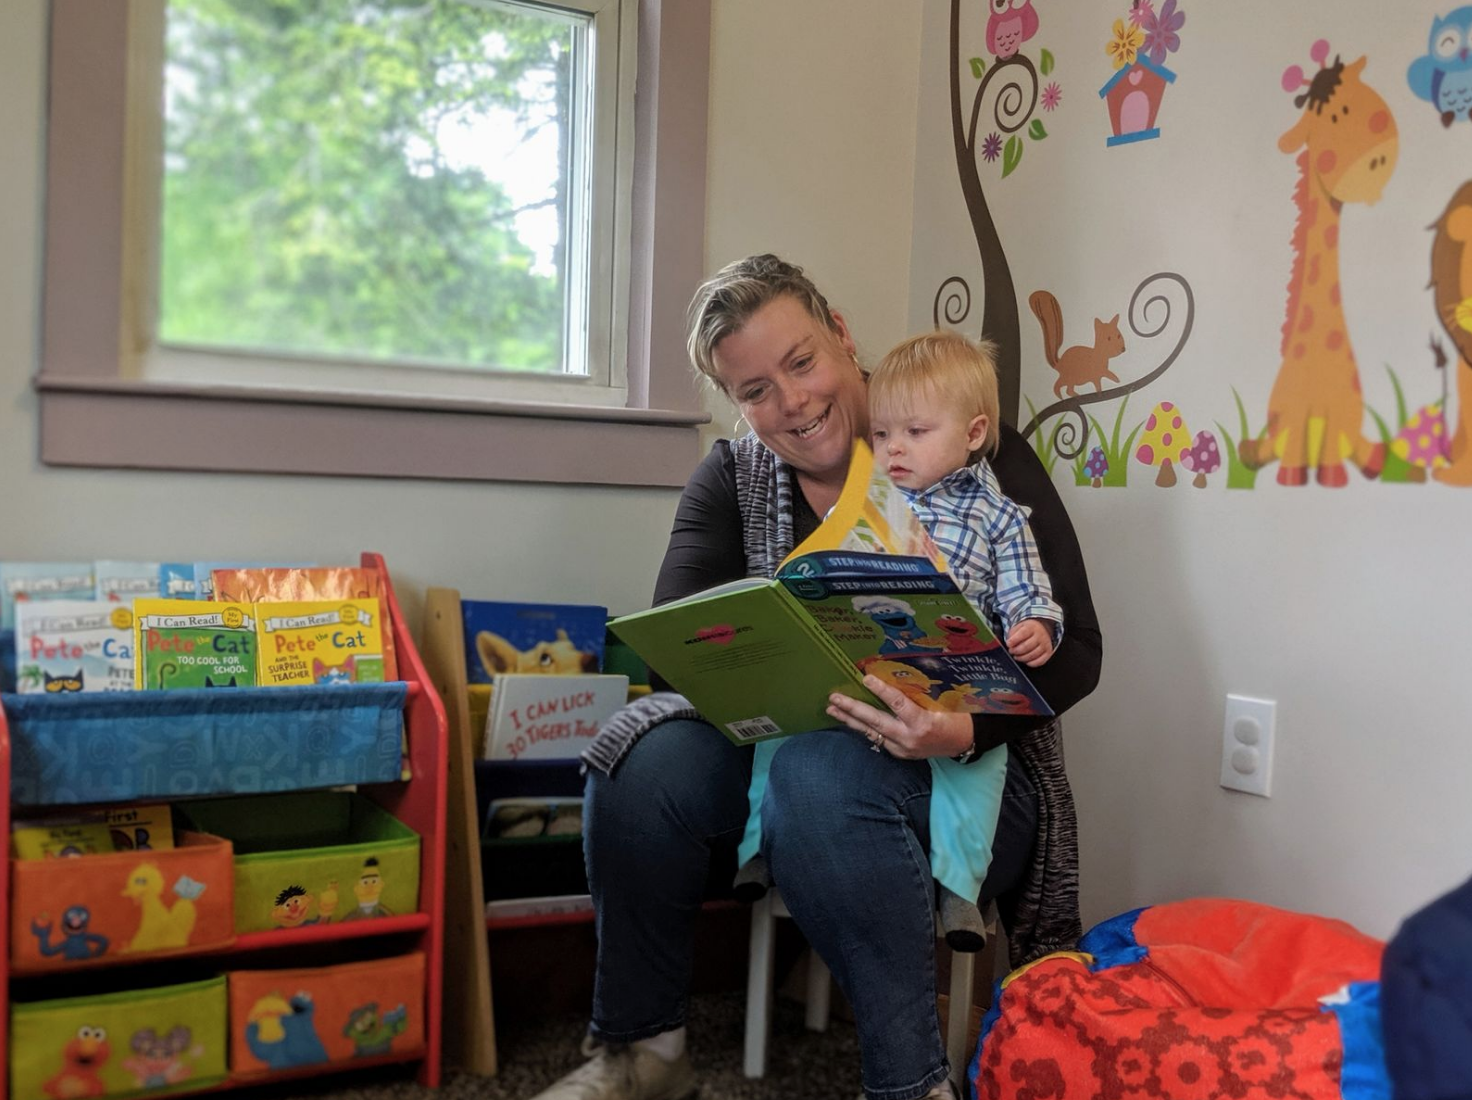 Sandy's Tiny Tykes Daycare will open in Sandra Emery's Haverhill home this fall.